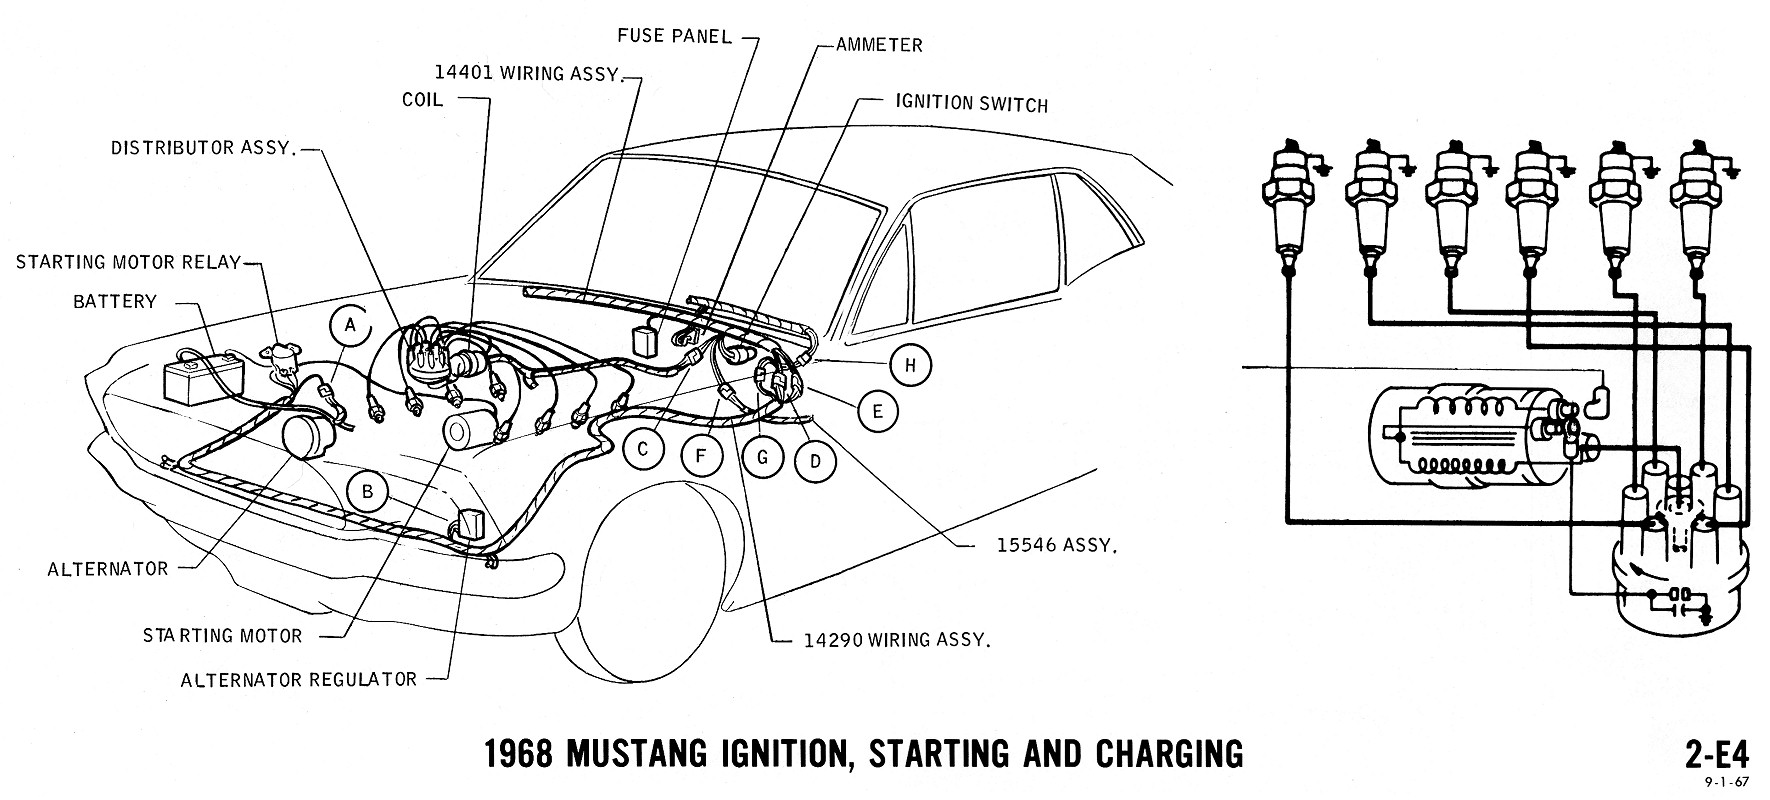 1968 mustang wiring diagram ignition starting charging 2 1968 mustang wiring diagrams and vacuum schematics average joe 68 Mustang Wiring Diagram at webbmarketing.co